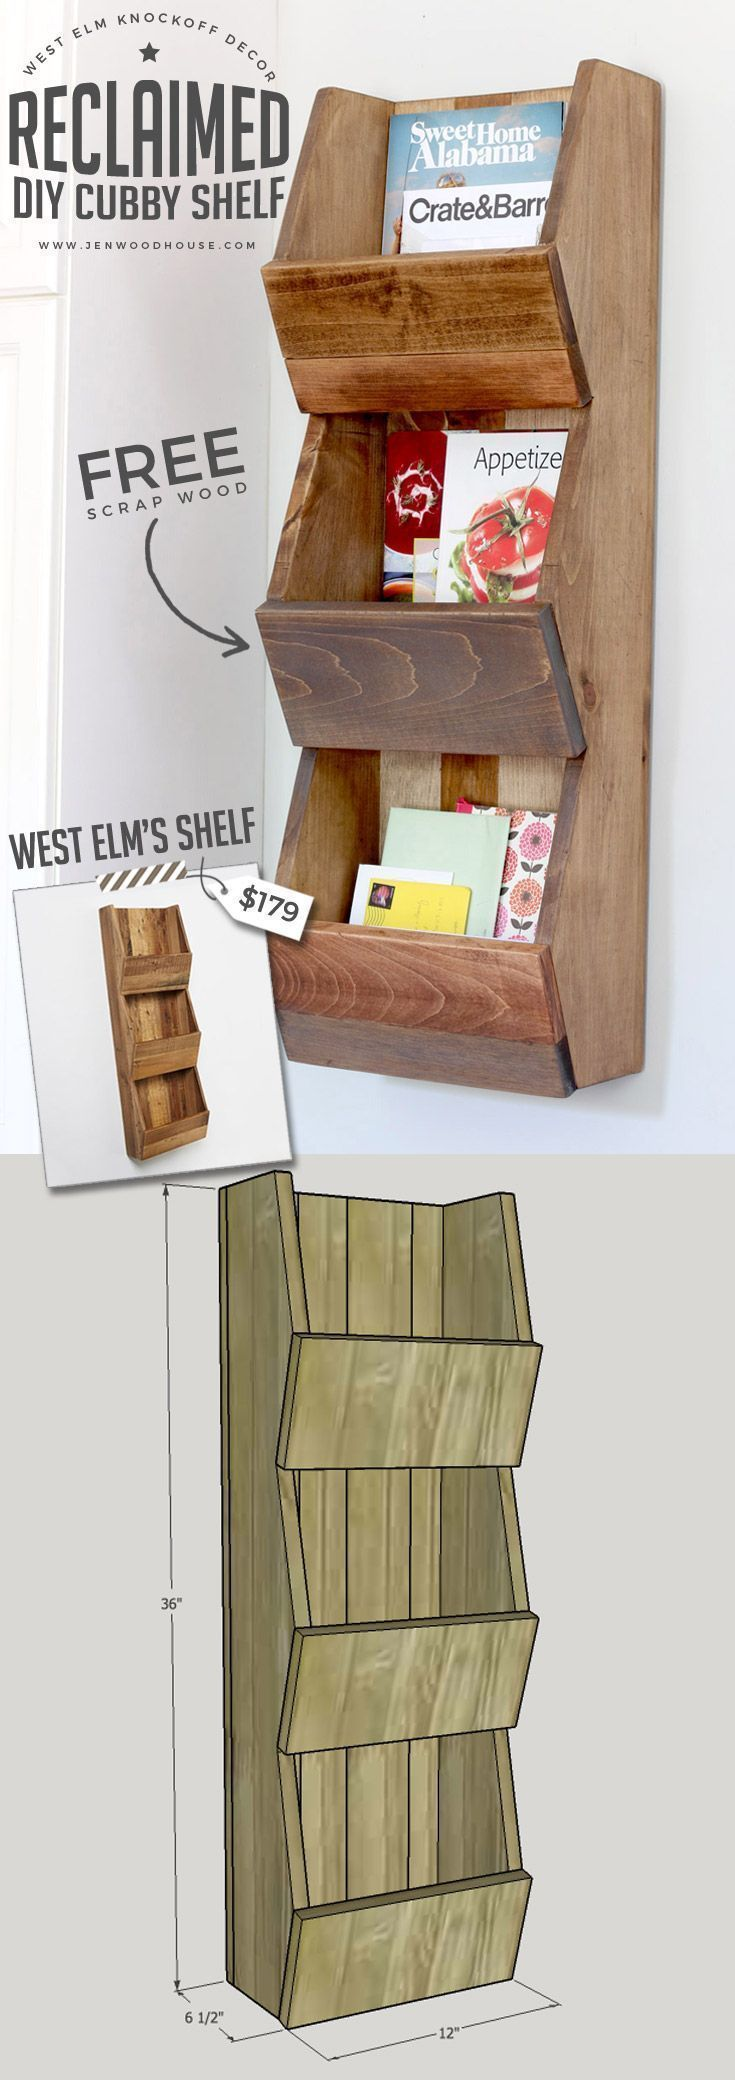 LOVE THIS! Tutorial on how to build a DIY West Elm knockoff cubby shelf. Build it out of scrap wood! #DIY #WestElm #WestElmKnockoffs #woodworking, #shelf #cubby